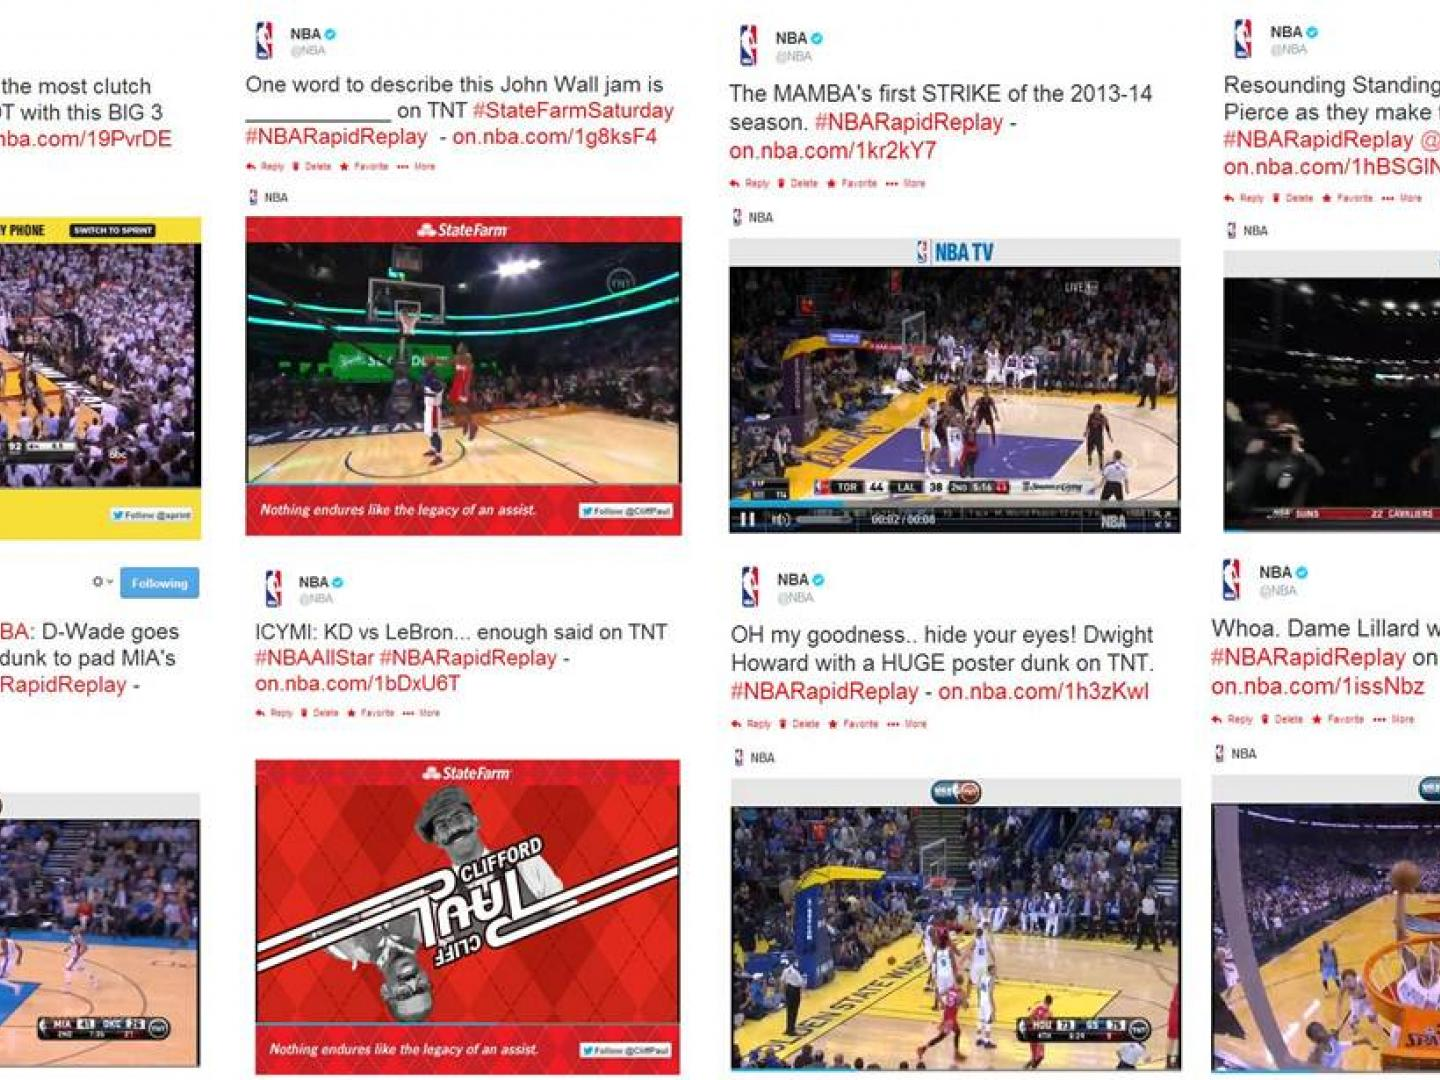 NBA Use of Twitter Amplify Thumbnail